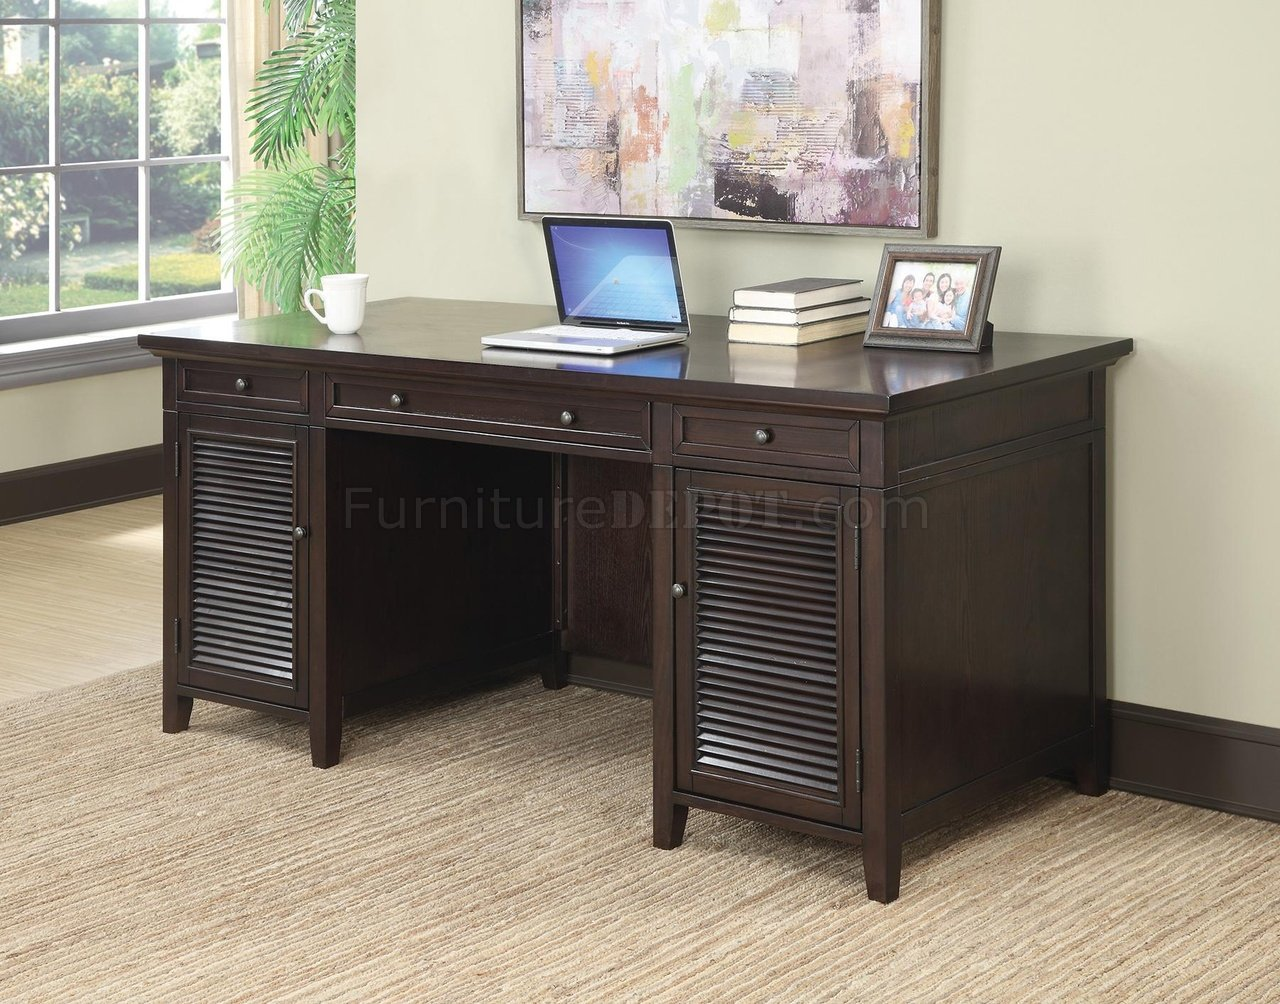 801097 Office Desk In Dark Brown By Coaster W Power Outlet